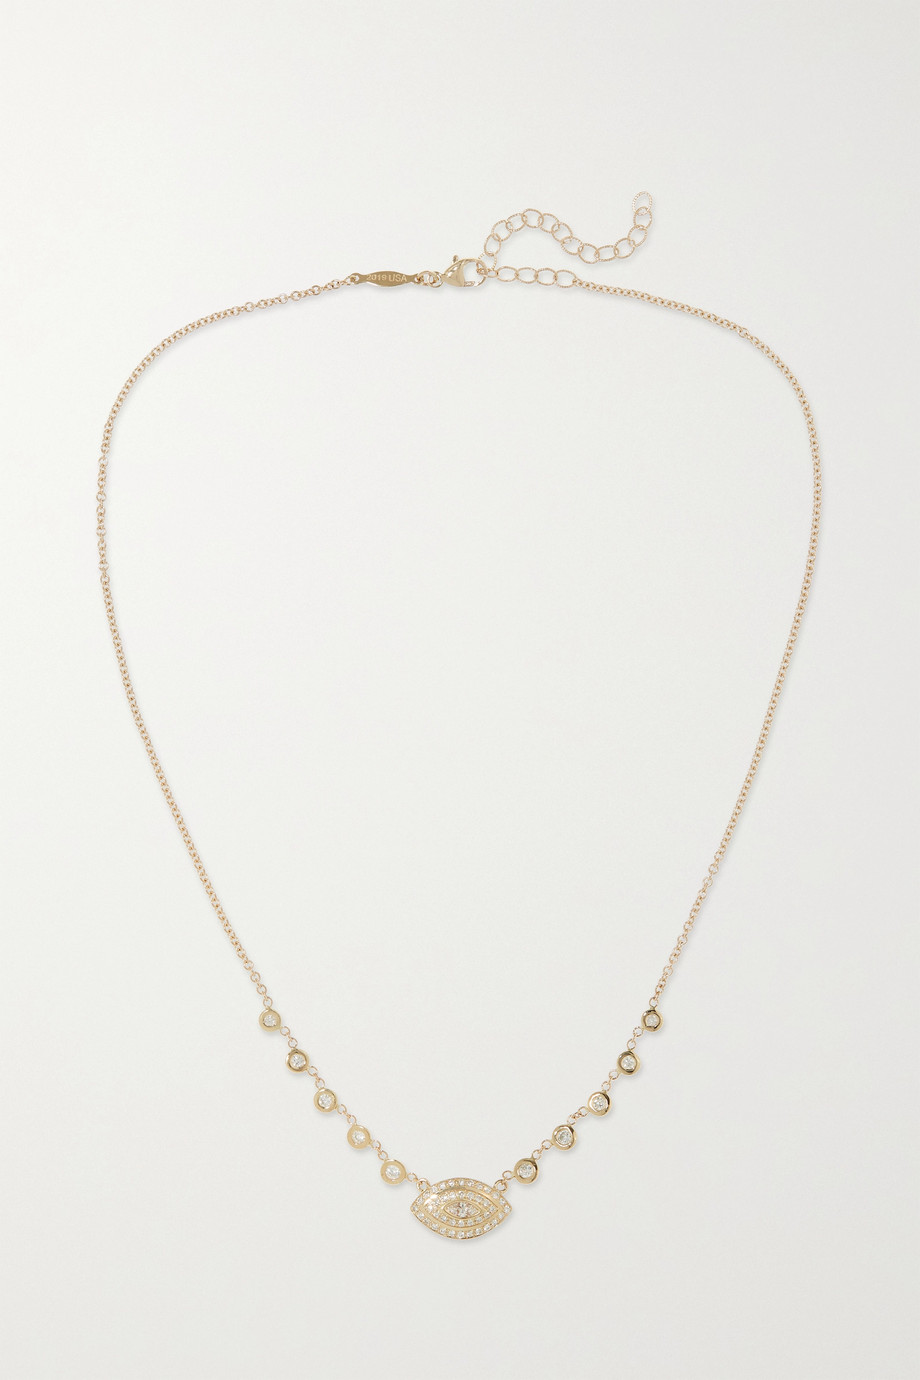 JACQUIE AICHE Emily 14-karat gold diamond necklace